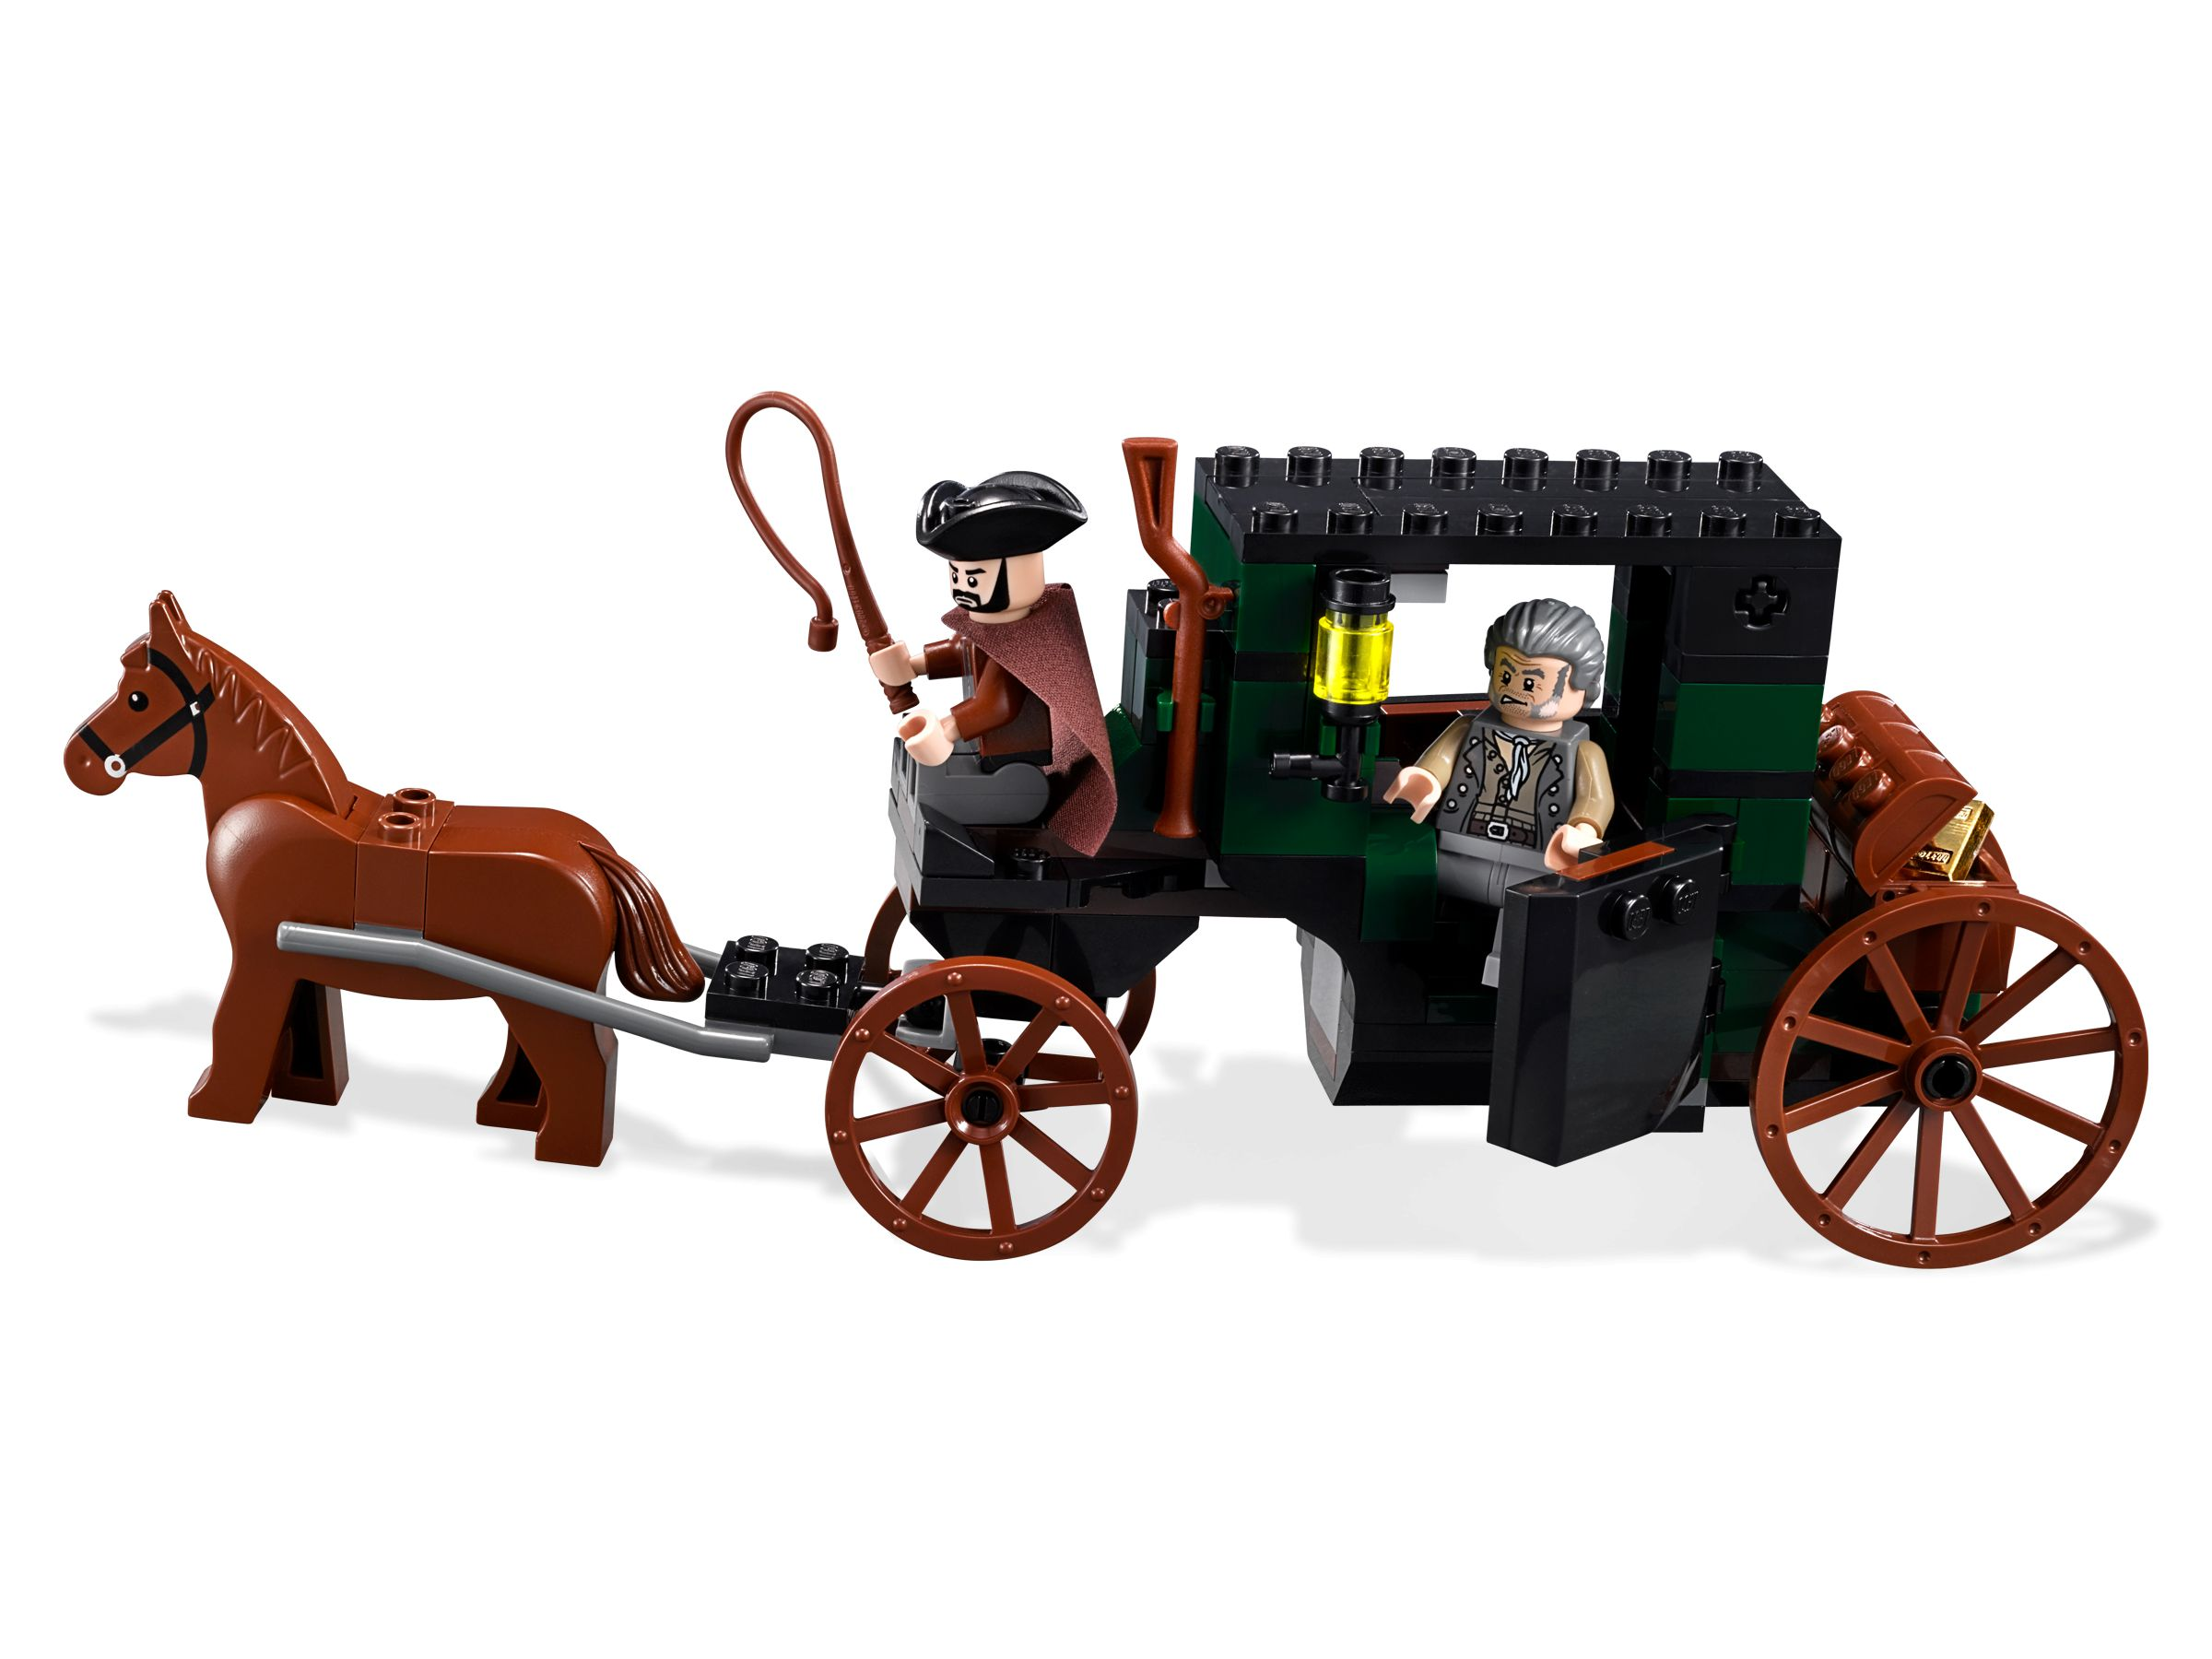 LEGO Pirates of the Caribbean 4193 Flucht aus London LEGO_4193_alt4.jpg